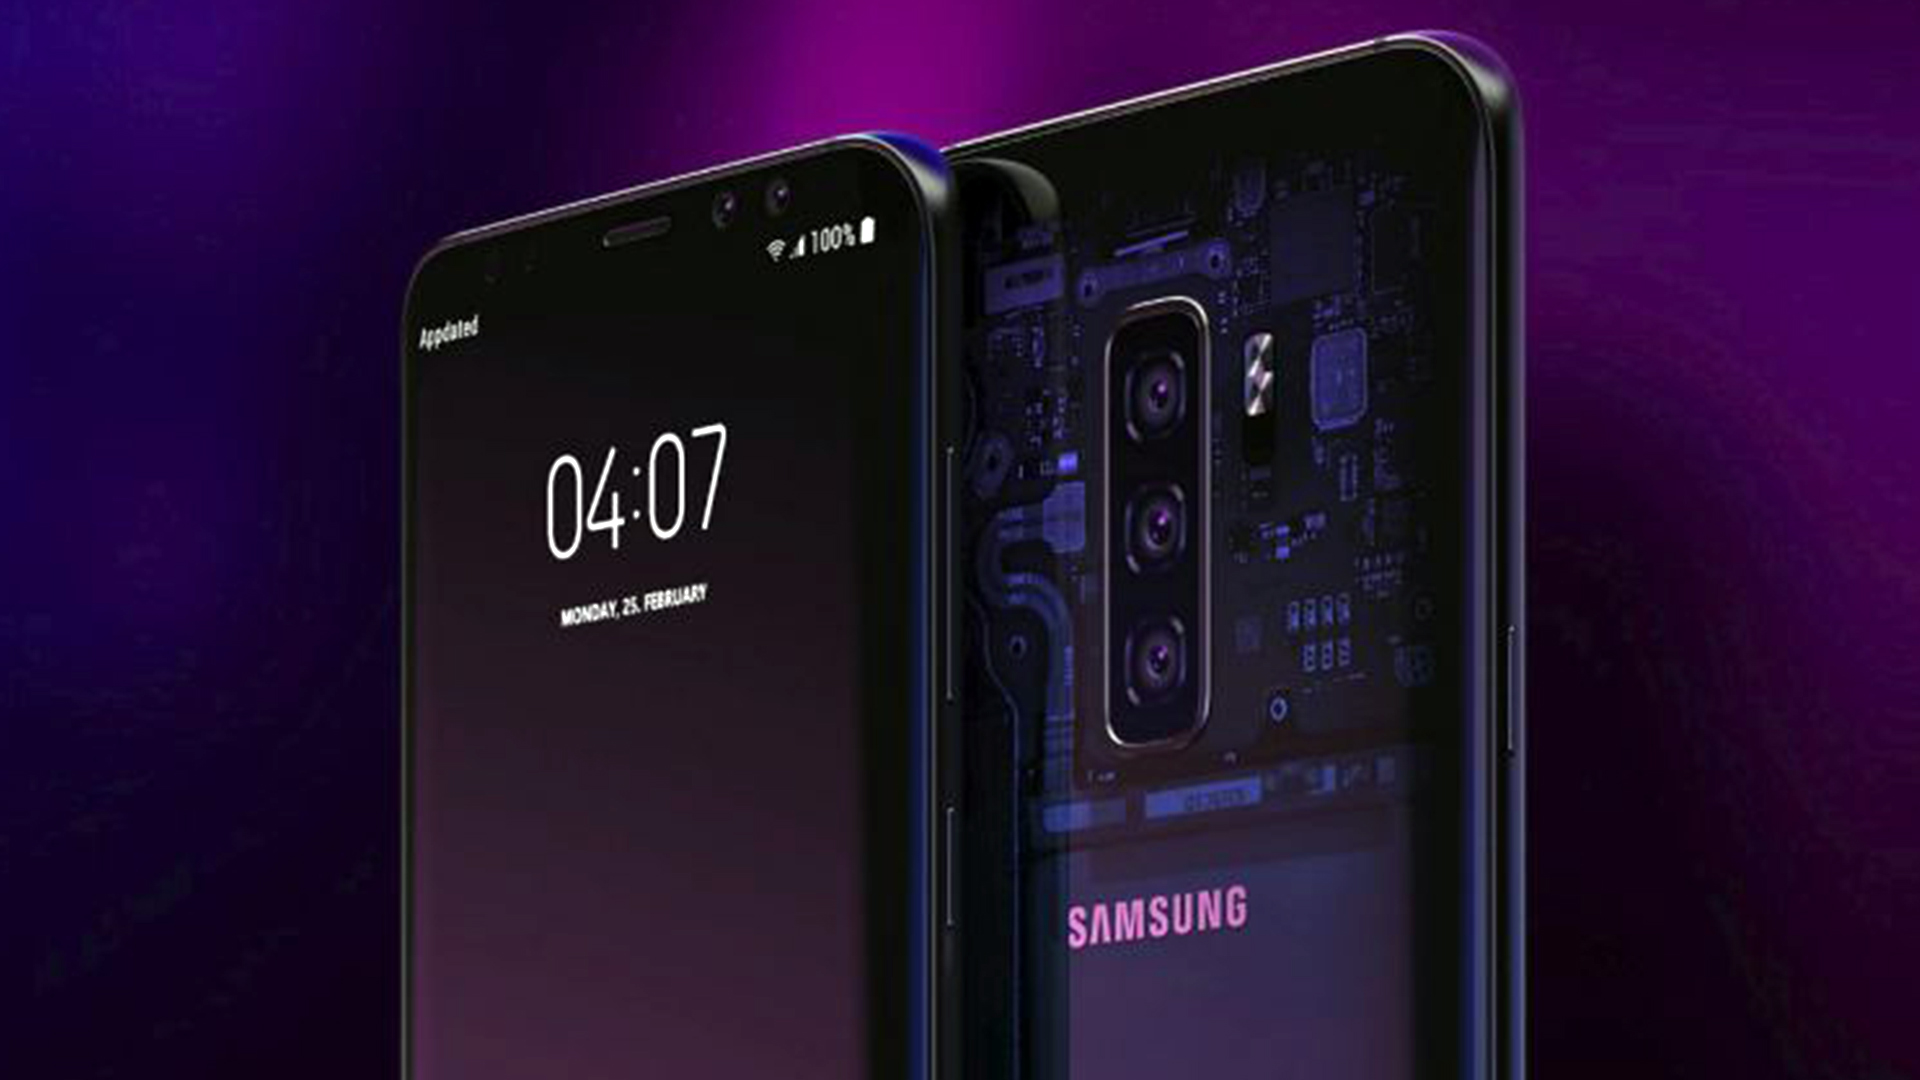 Samsung Galaxy S10 5G variant under production, only 2 million units